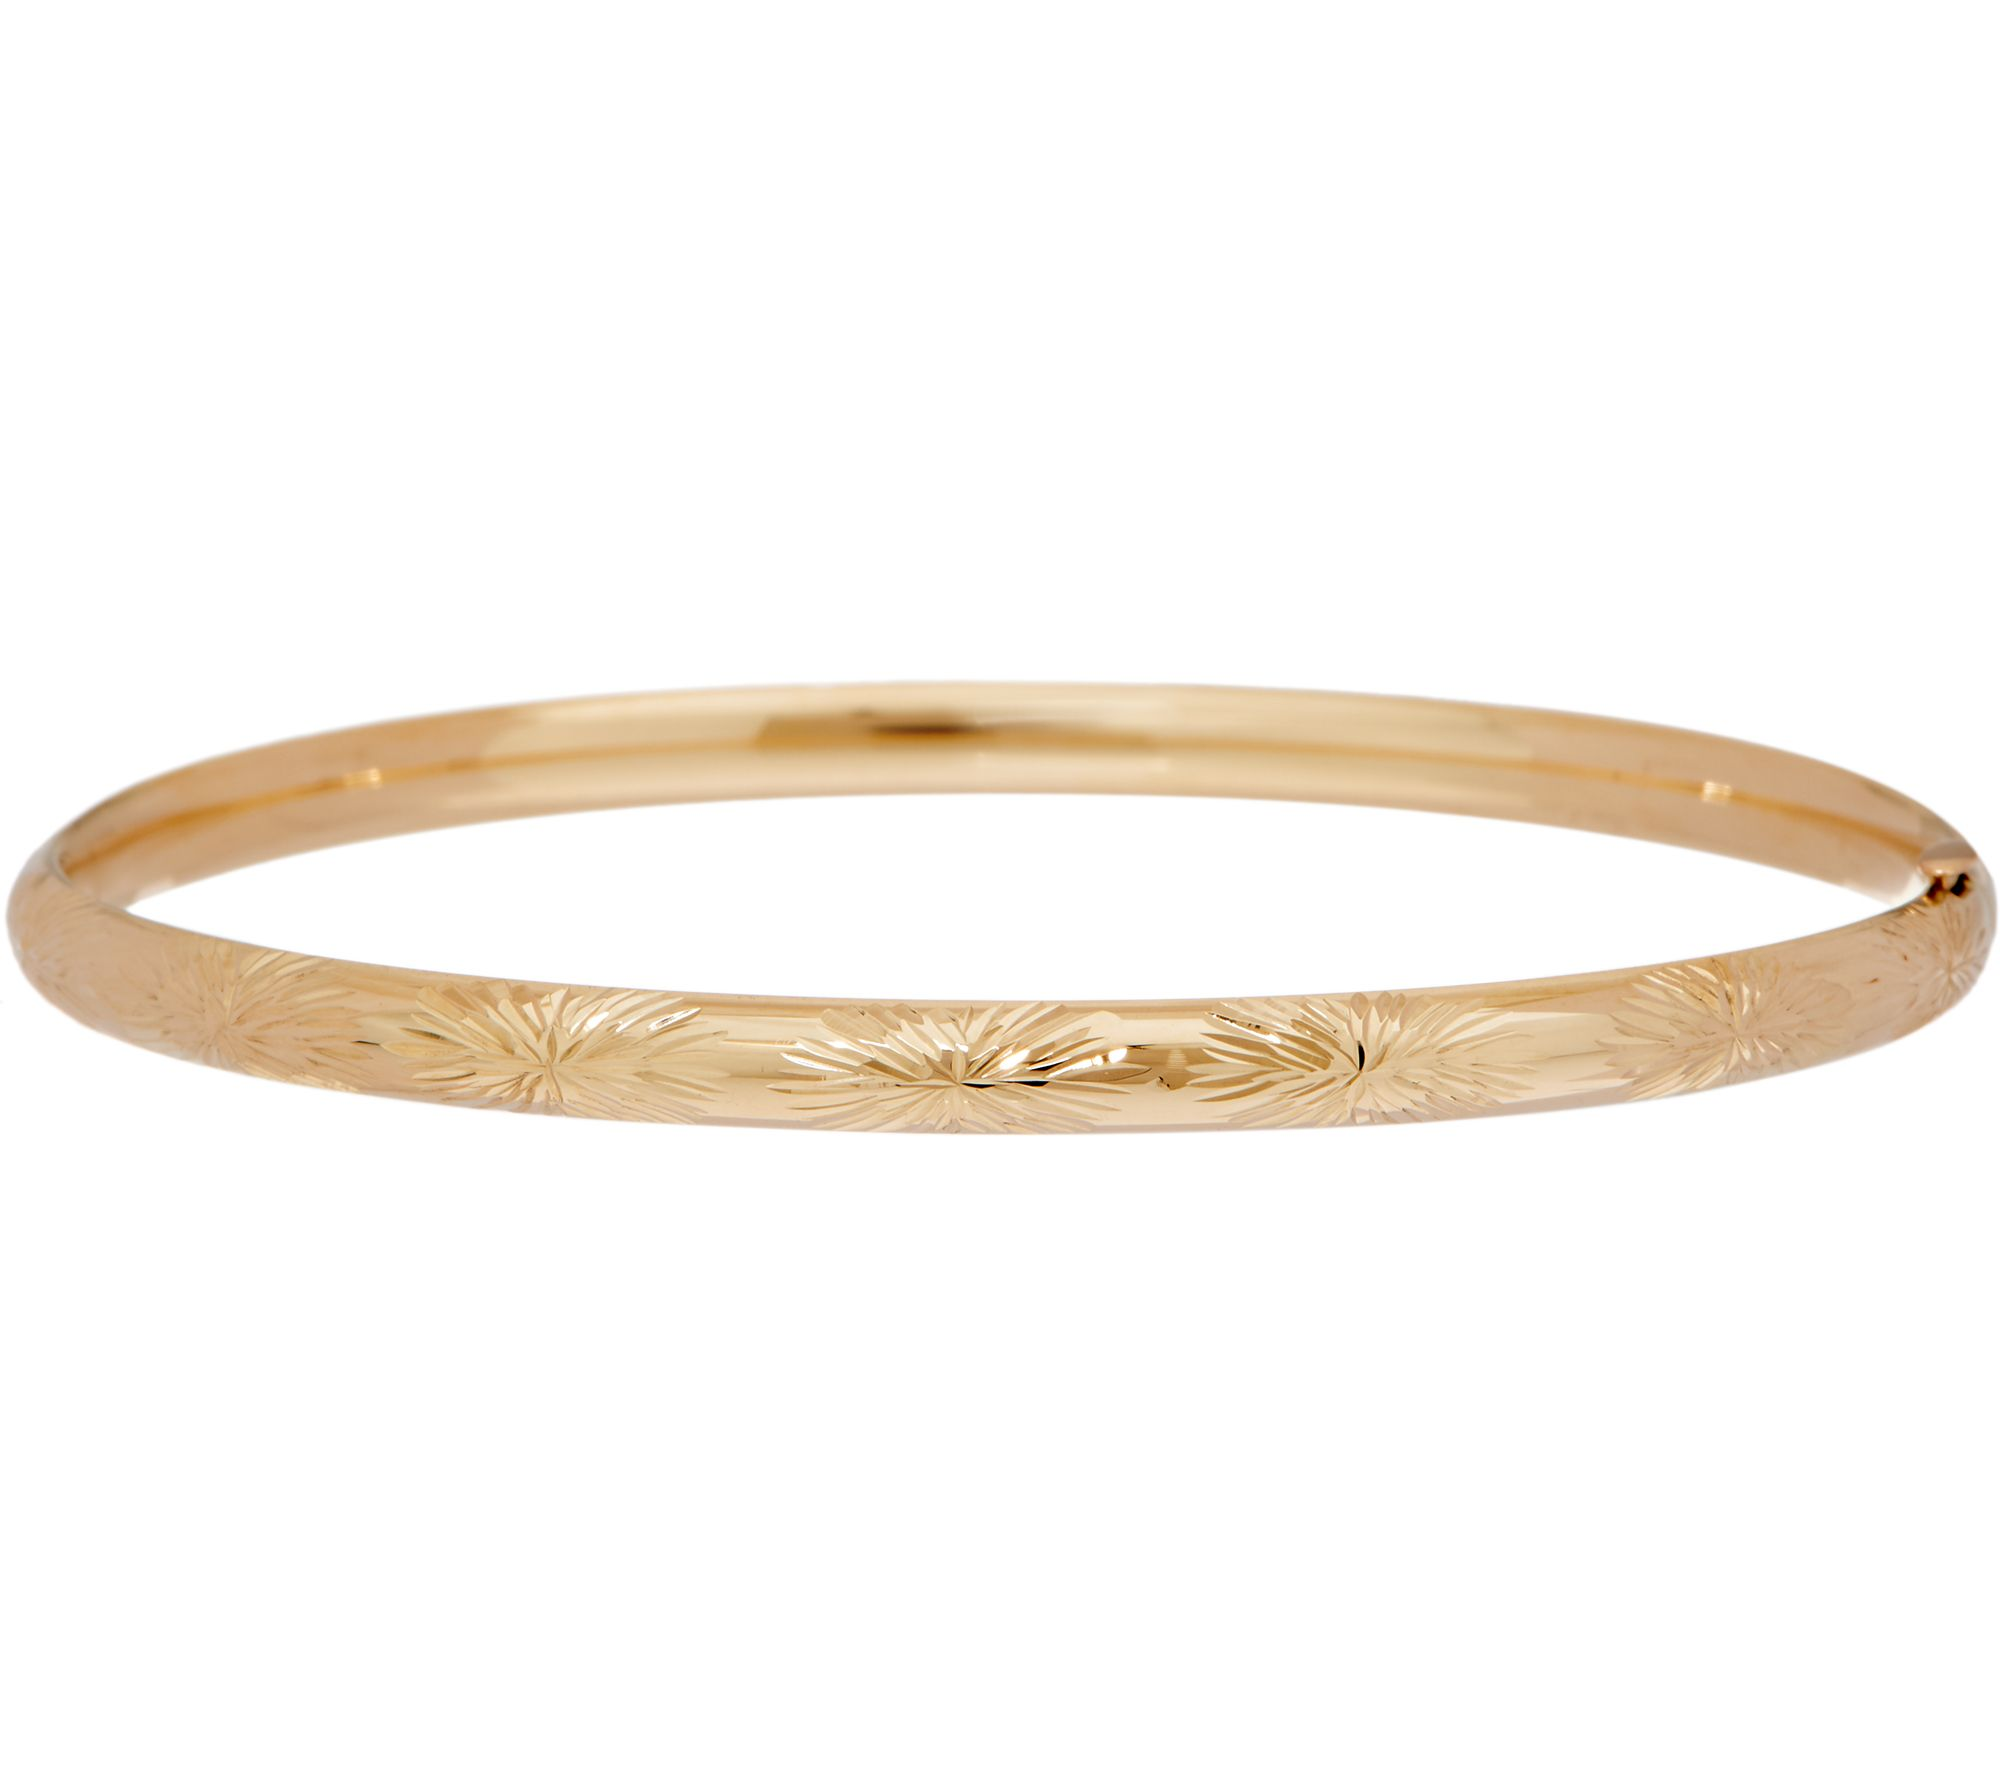 gold bracelets english solid products bangles fill personalized norman bangle img bespoke mom